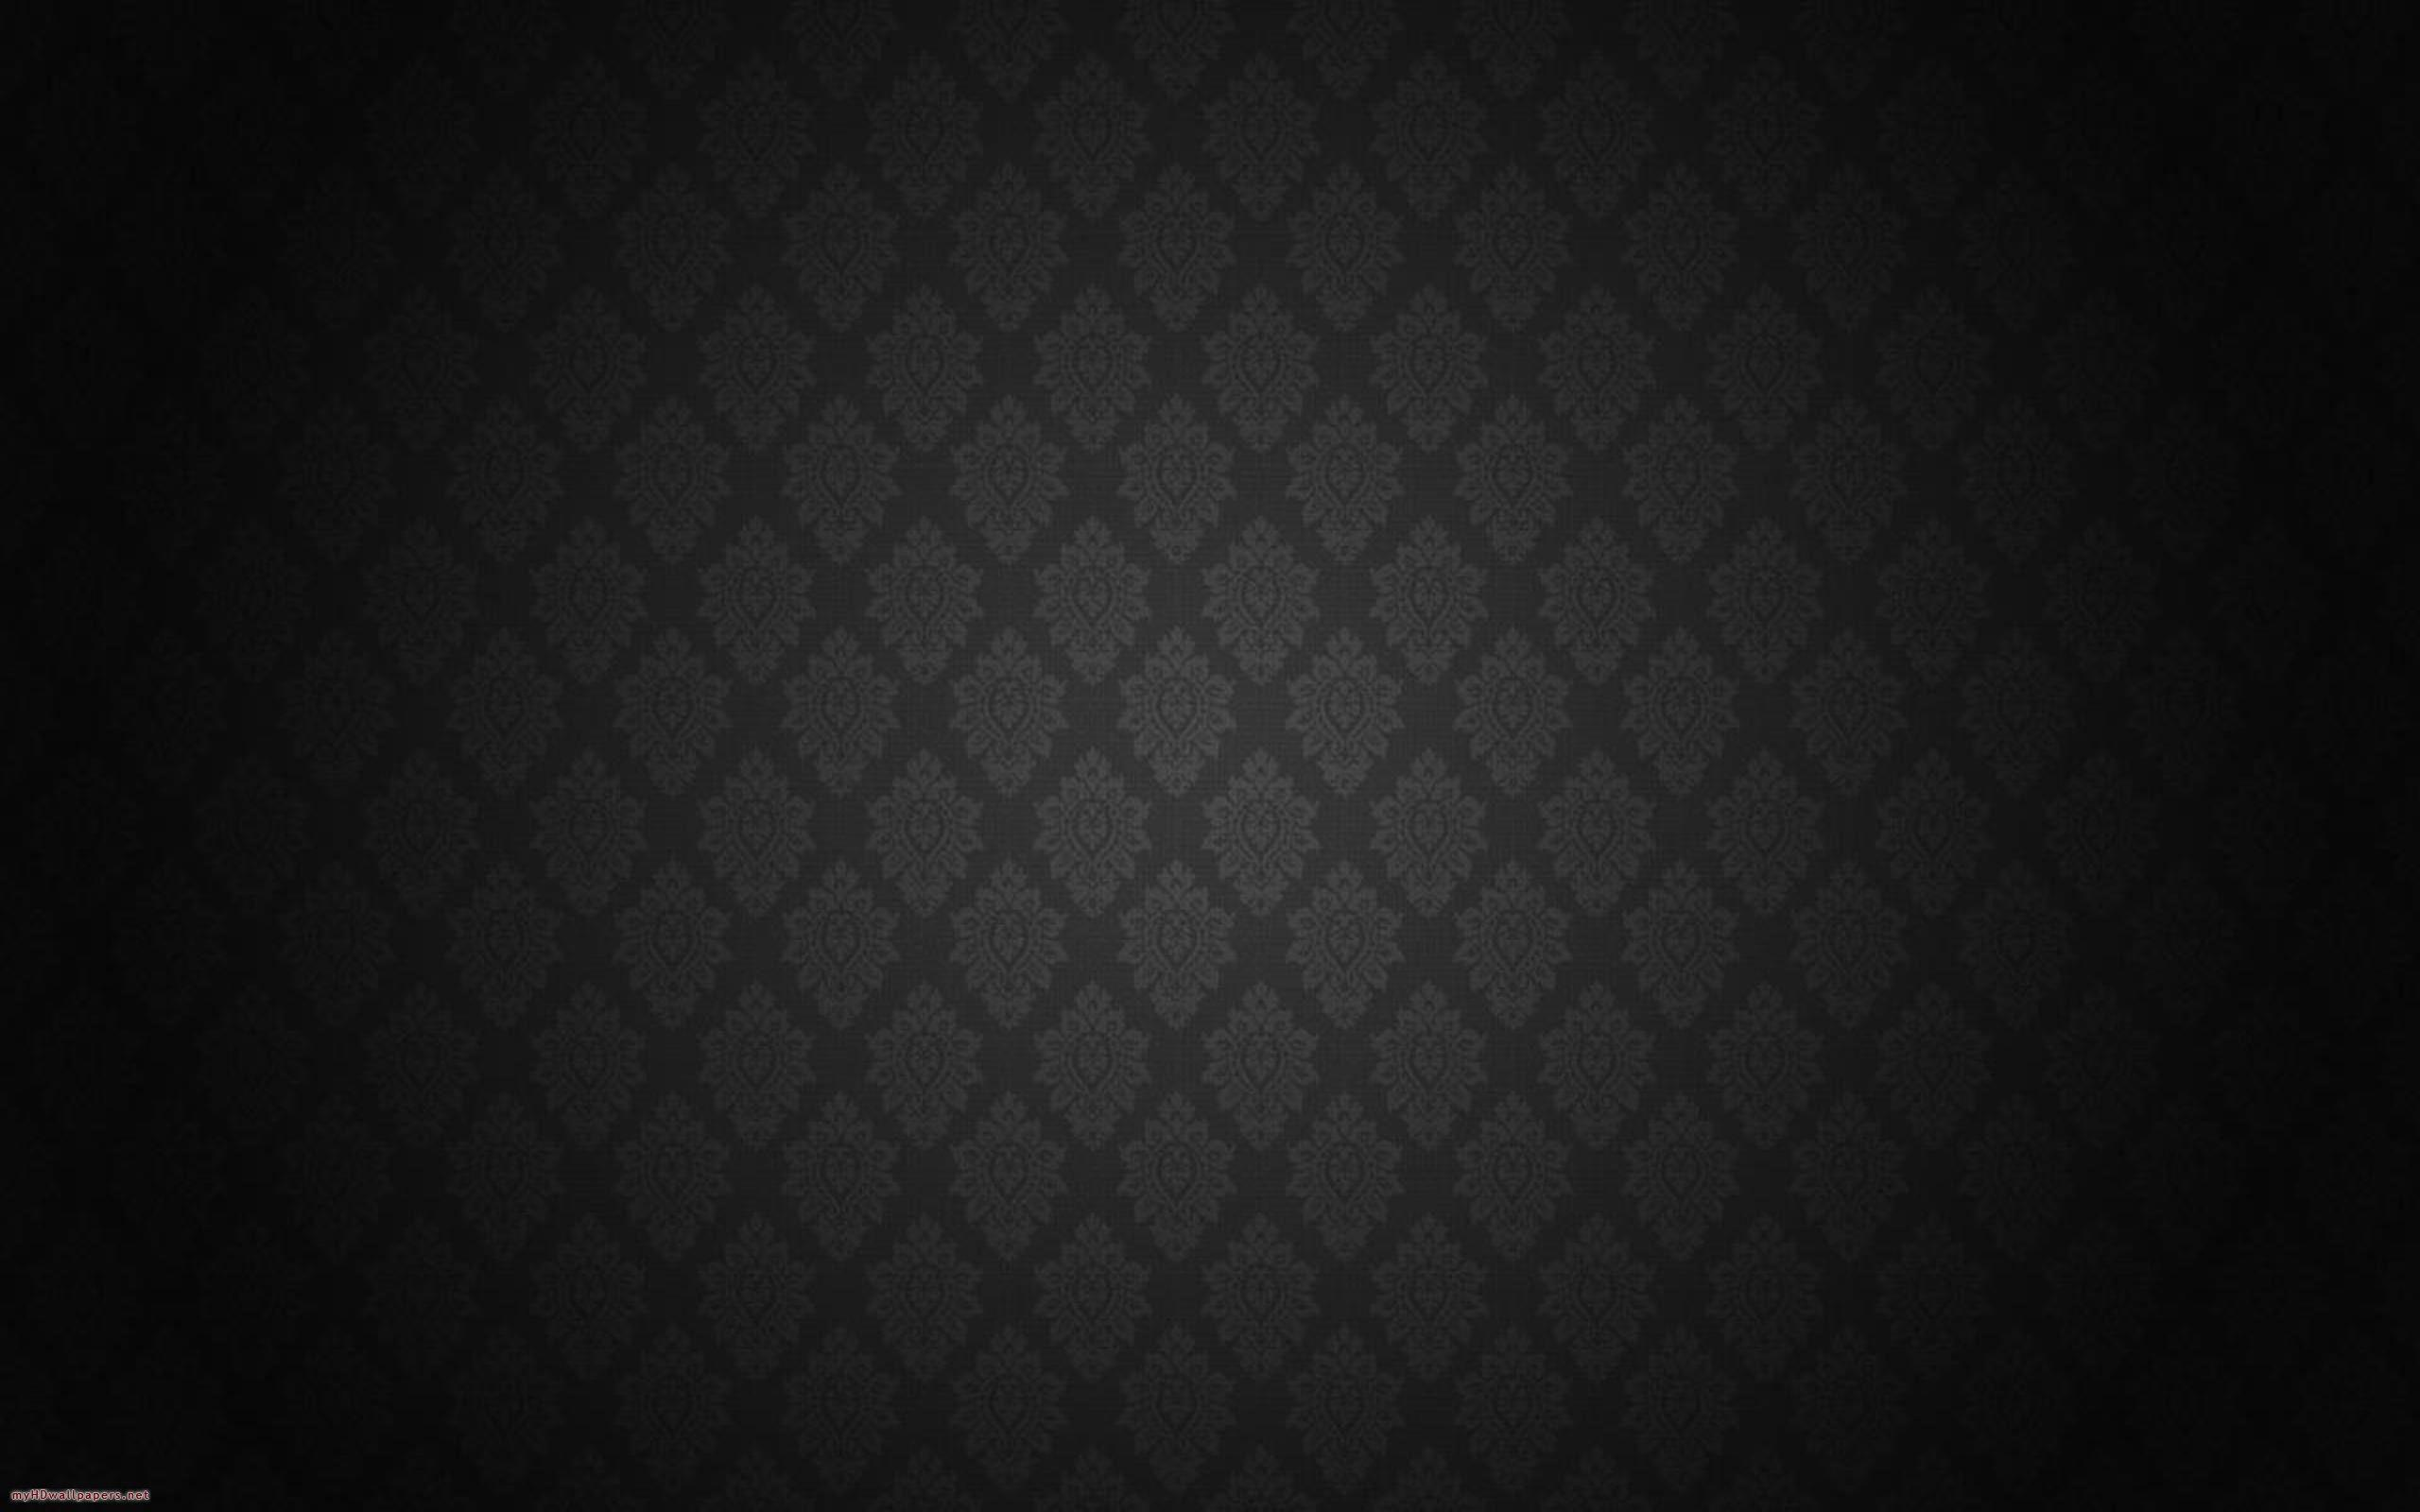 Black And White Hd Wallpapers Wallpaper Cave